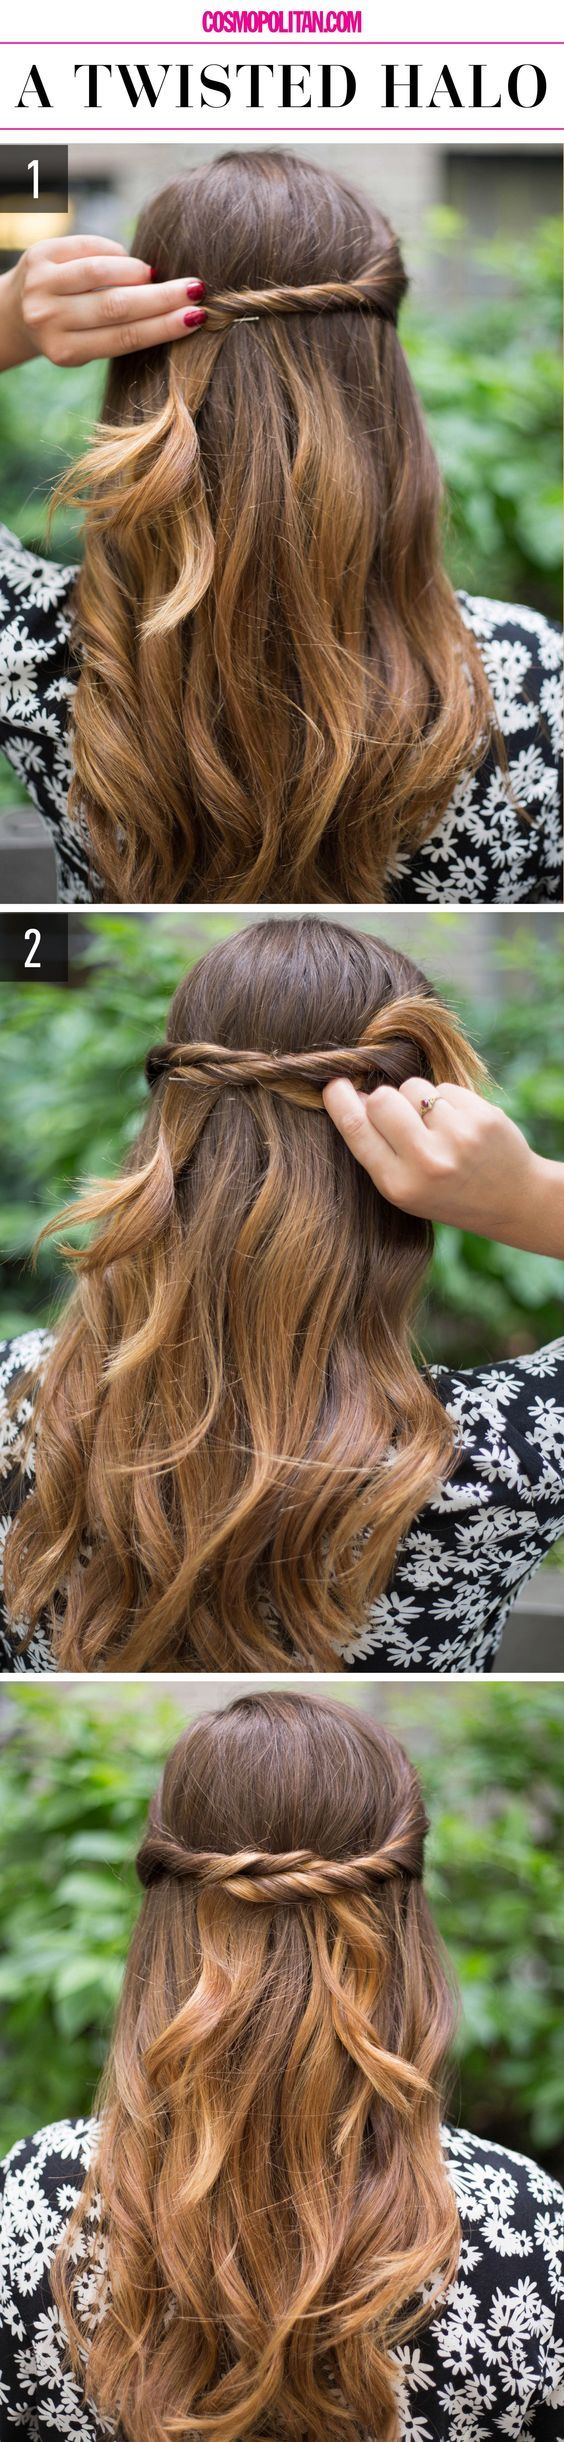 50 Romantic Hairstyles For Date Night - Trend To Wear